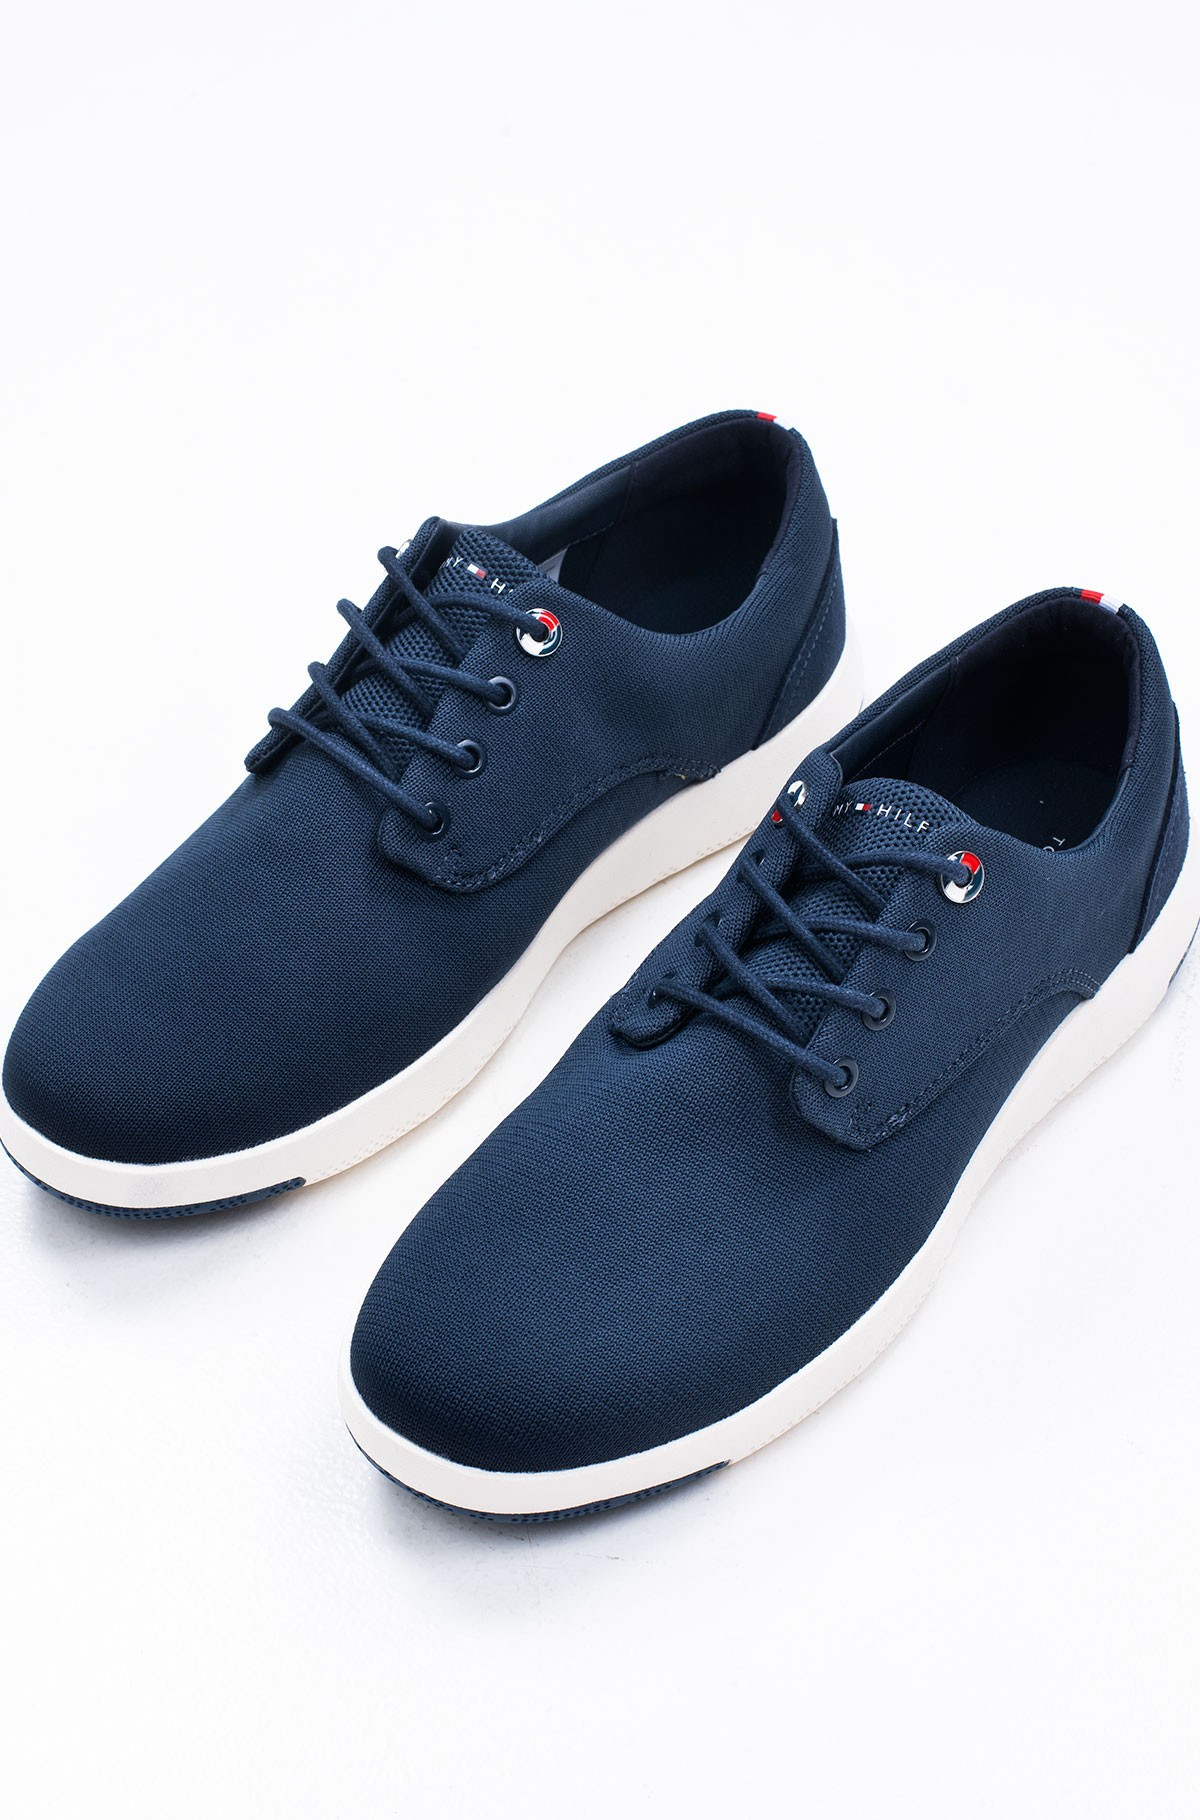 Casual shoes LIGHTWEIGHT TEXTILE LACE UP SHOE-full-1